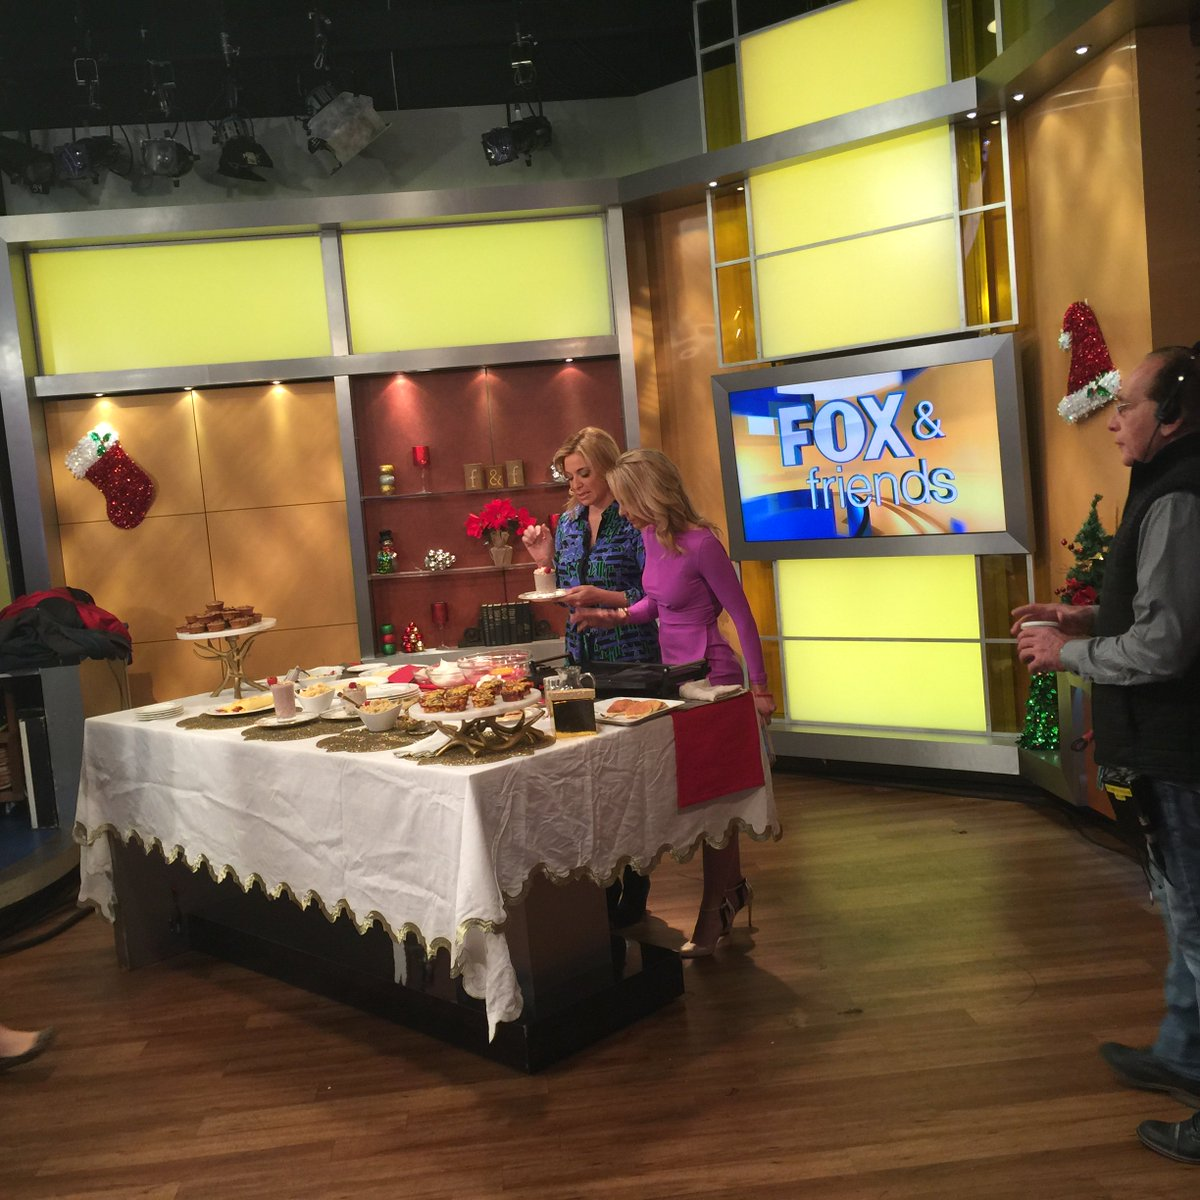 On stage at @foxandfriends with my @frontgate collection. Showing @ehasselbeck how to make a #glutenfree breakfast. https://t.co/BSGlHt6pB6